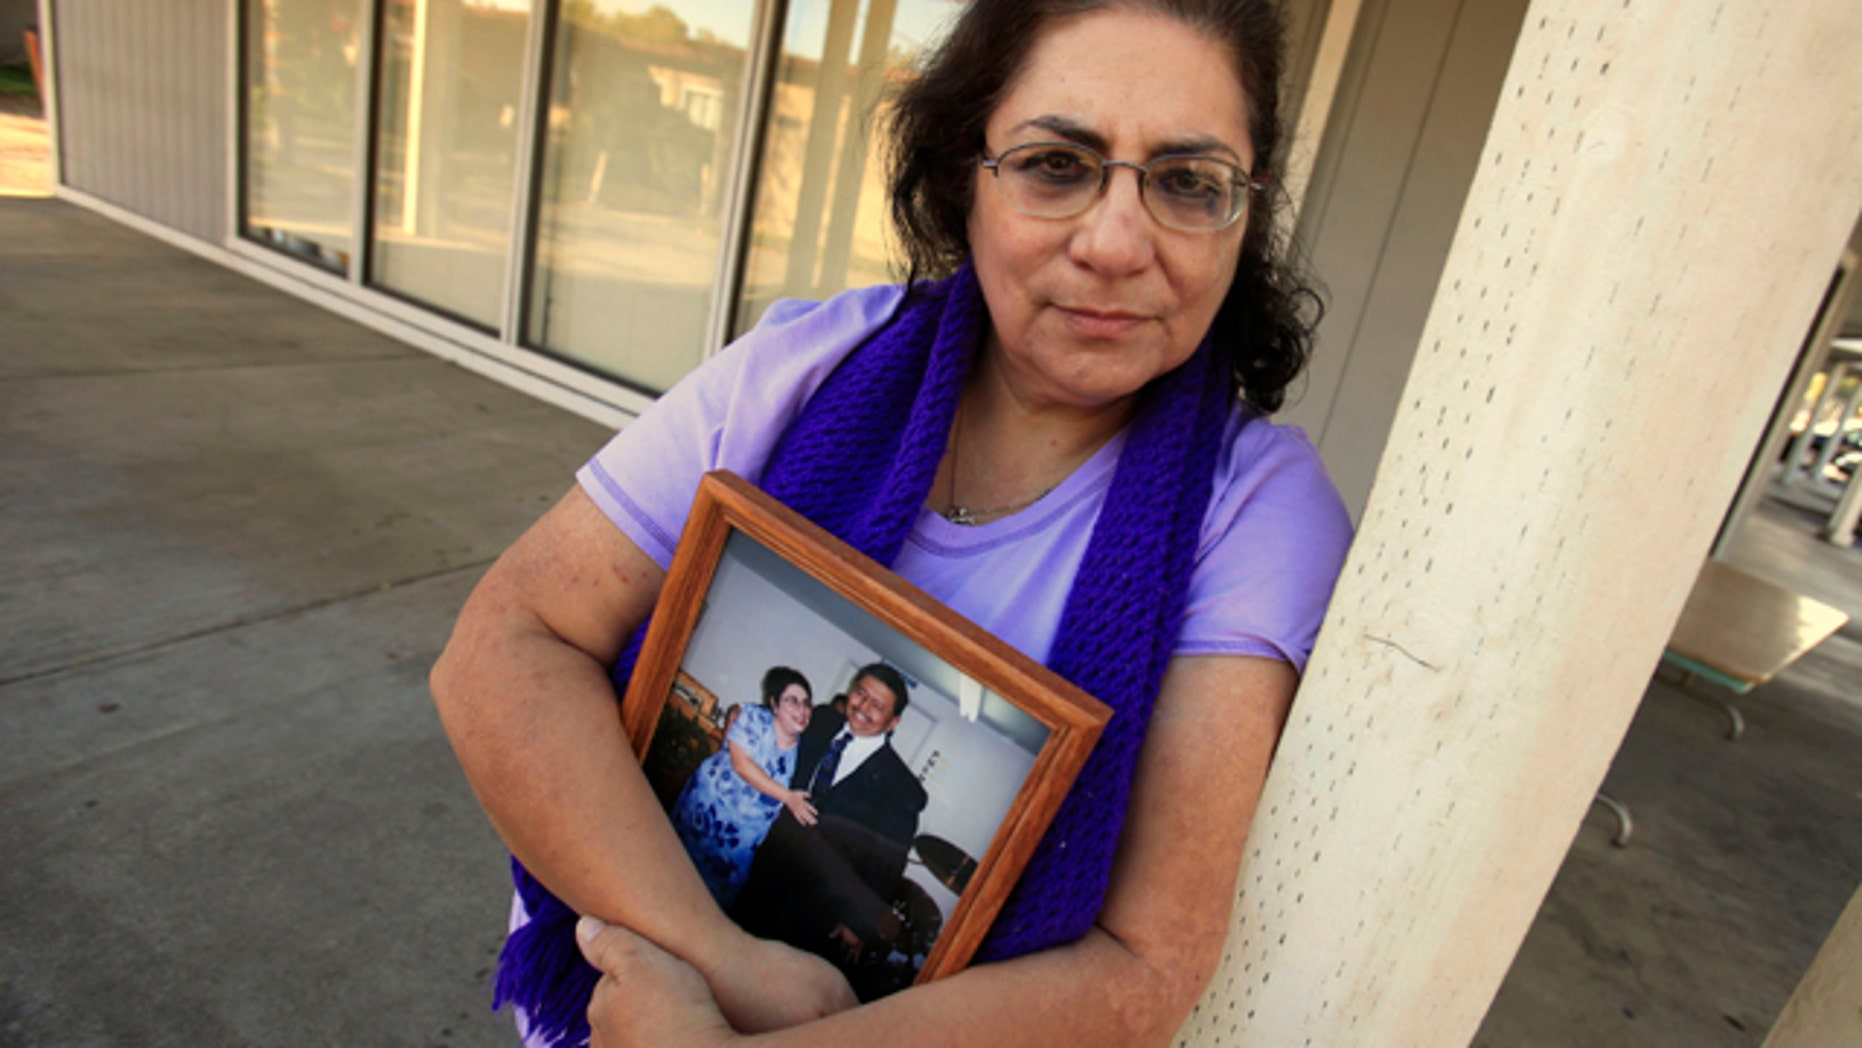 Nov. 4, 2011: Karen Carrisosa is seen with a photo of her and her husband Larry, at the site where he was killed in Sacramento, Calif. Carrisosa is a victim of a disturbing trend: Inmates who use smuggled mobile devices or work through third parties to access social networking sites -- giving them the ability to harass their victims and victim's families.